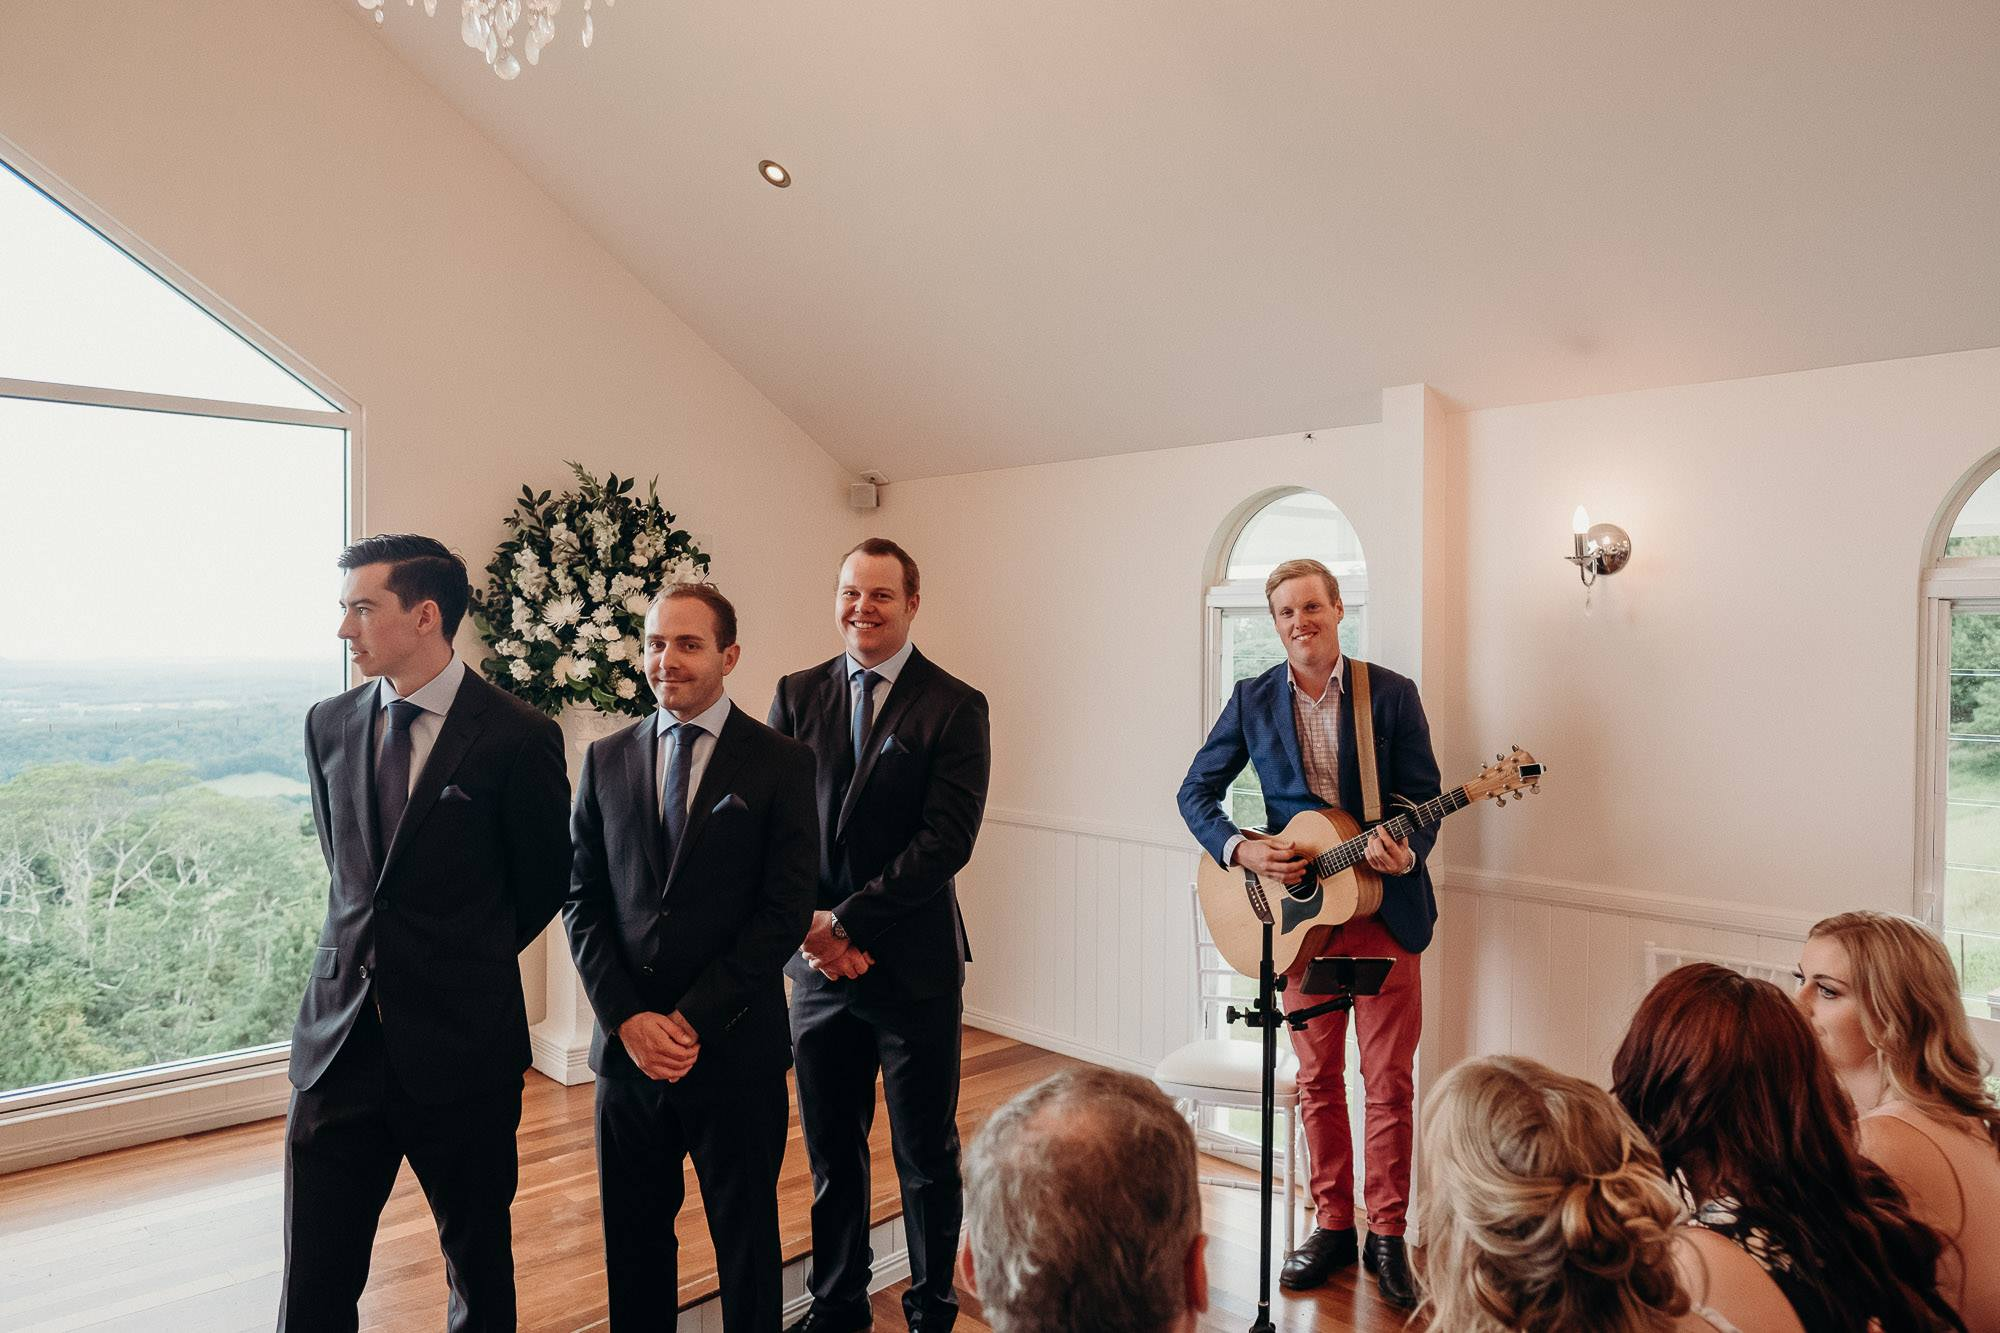 Brisbane Wedding Bands and Entertainment - Deus Photography 2017